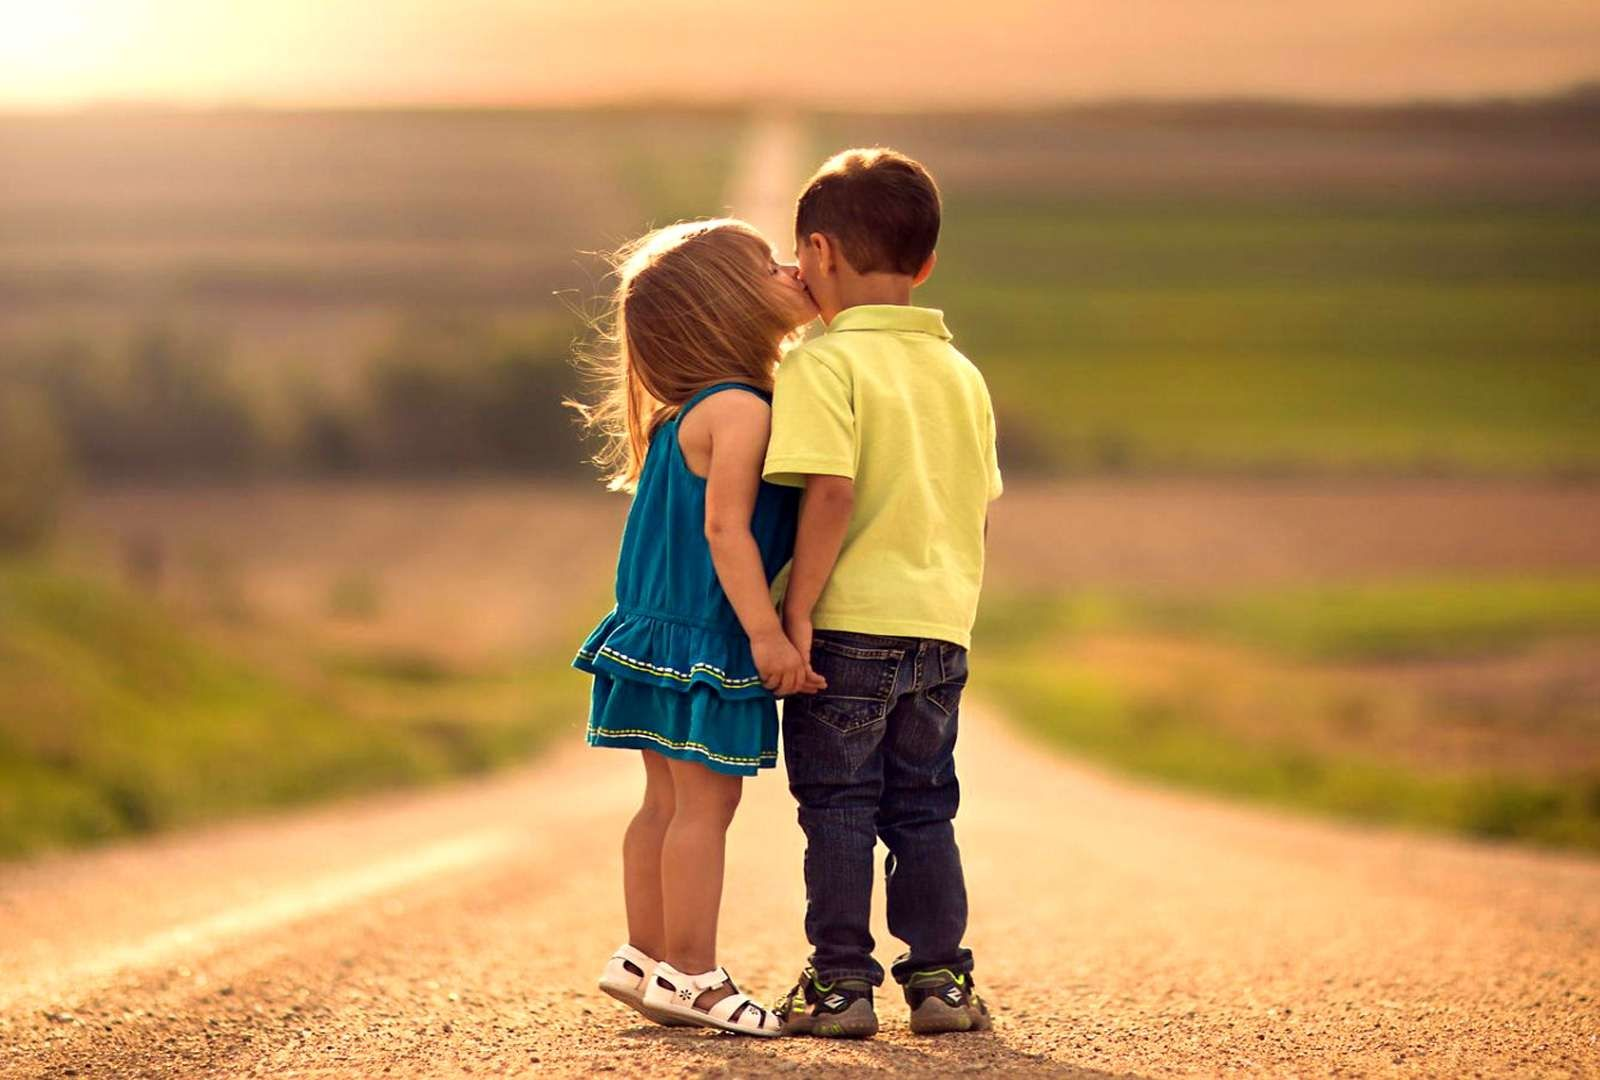 Romantic Baby Love Wallpaper : Best download images of love hug - Romantic Hug Wallpaper Hd Best collection Of Love couples ...